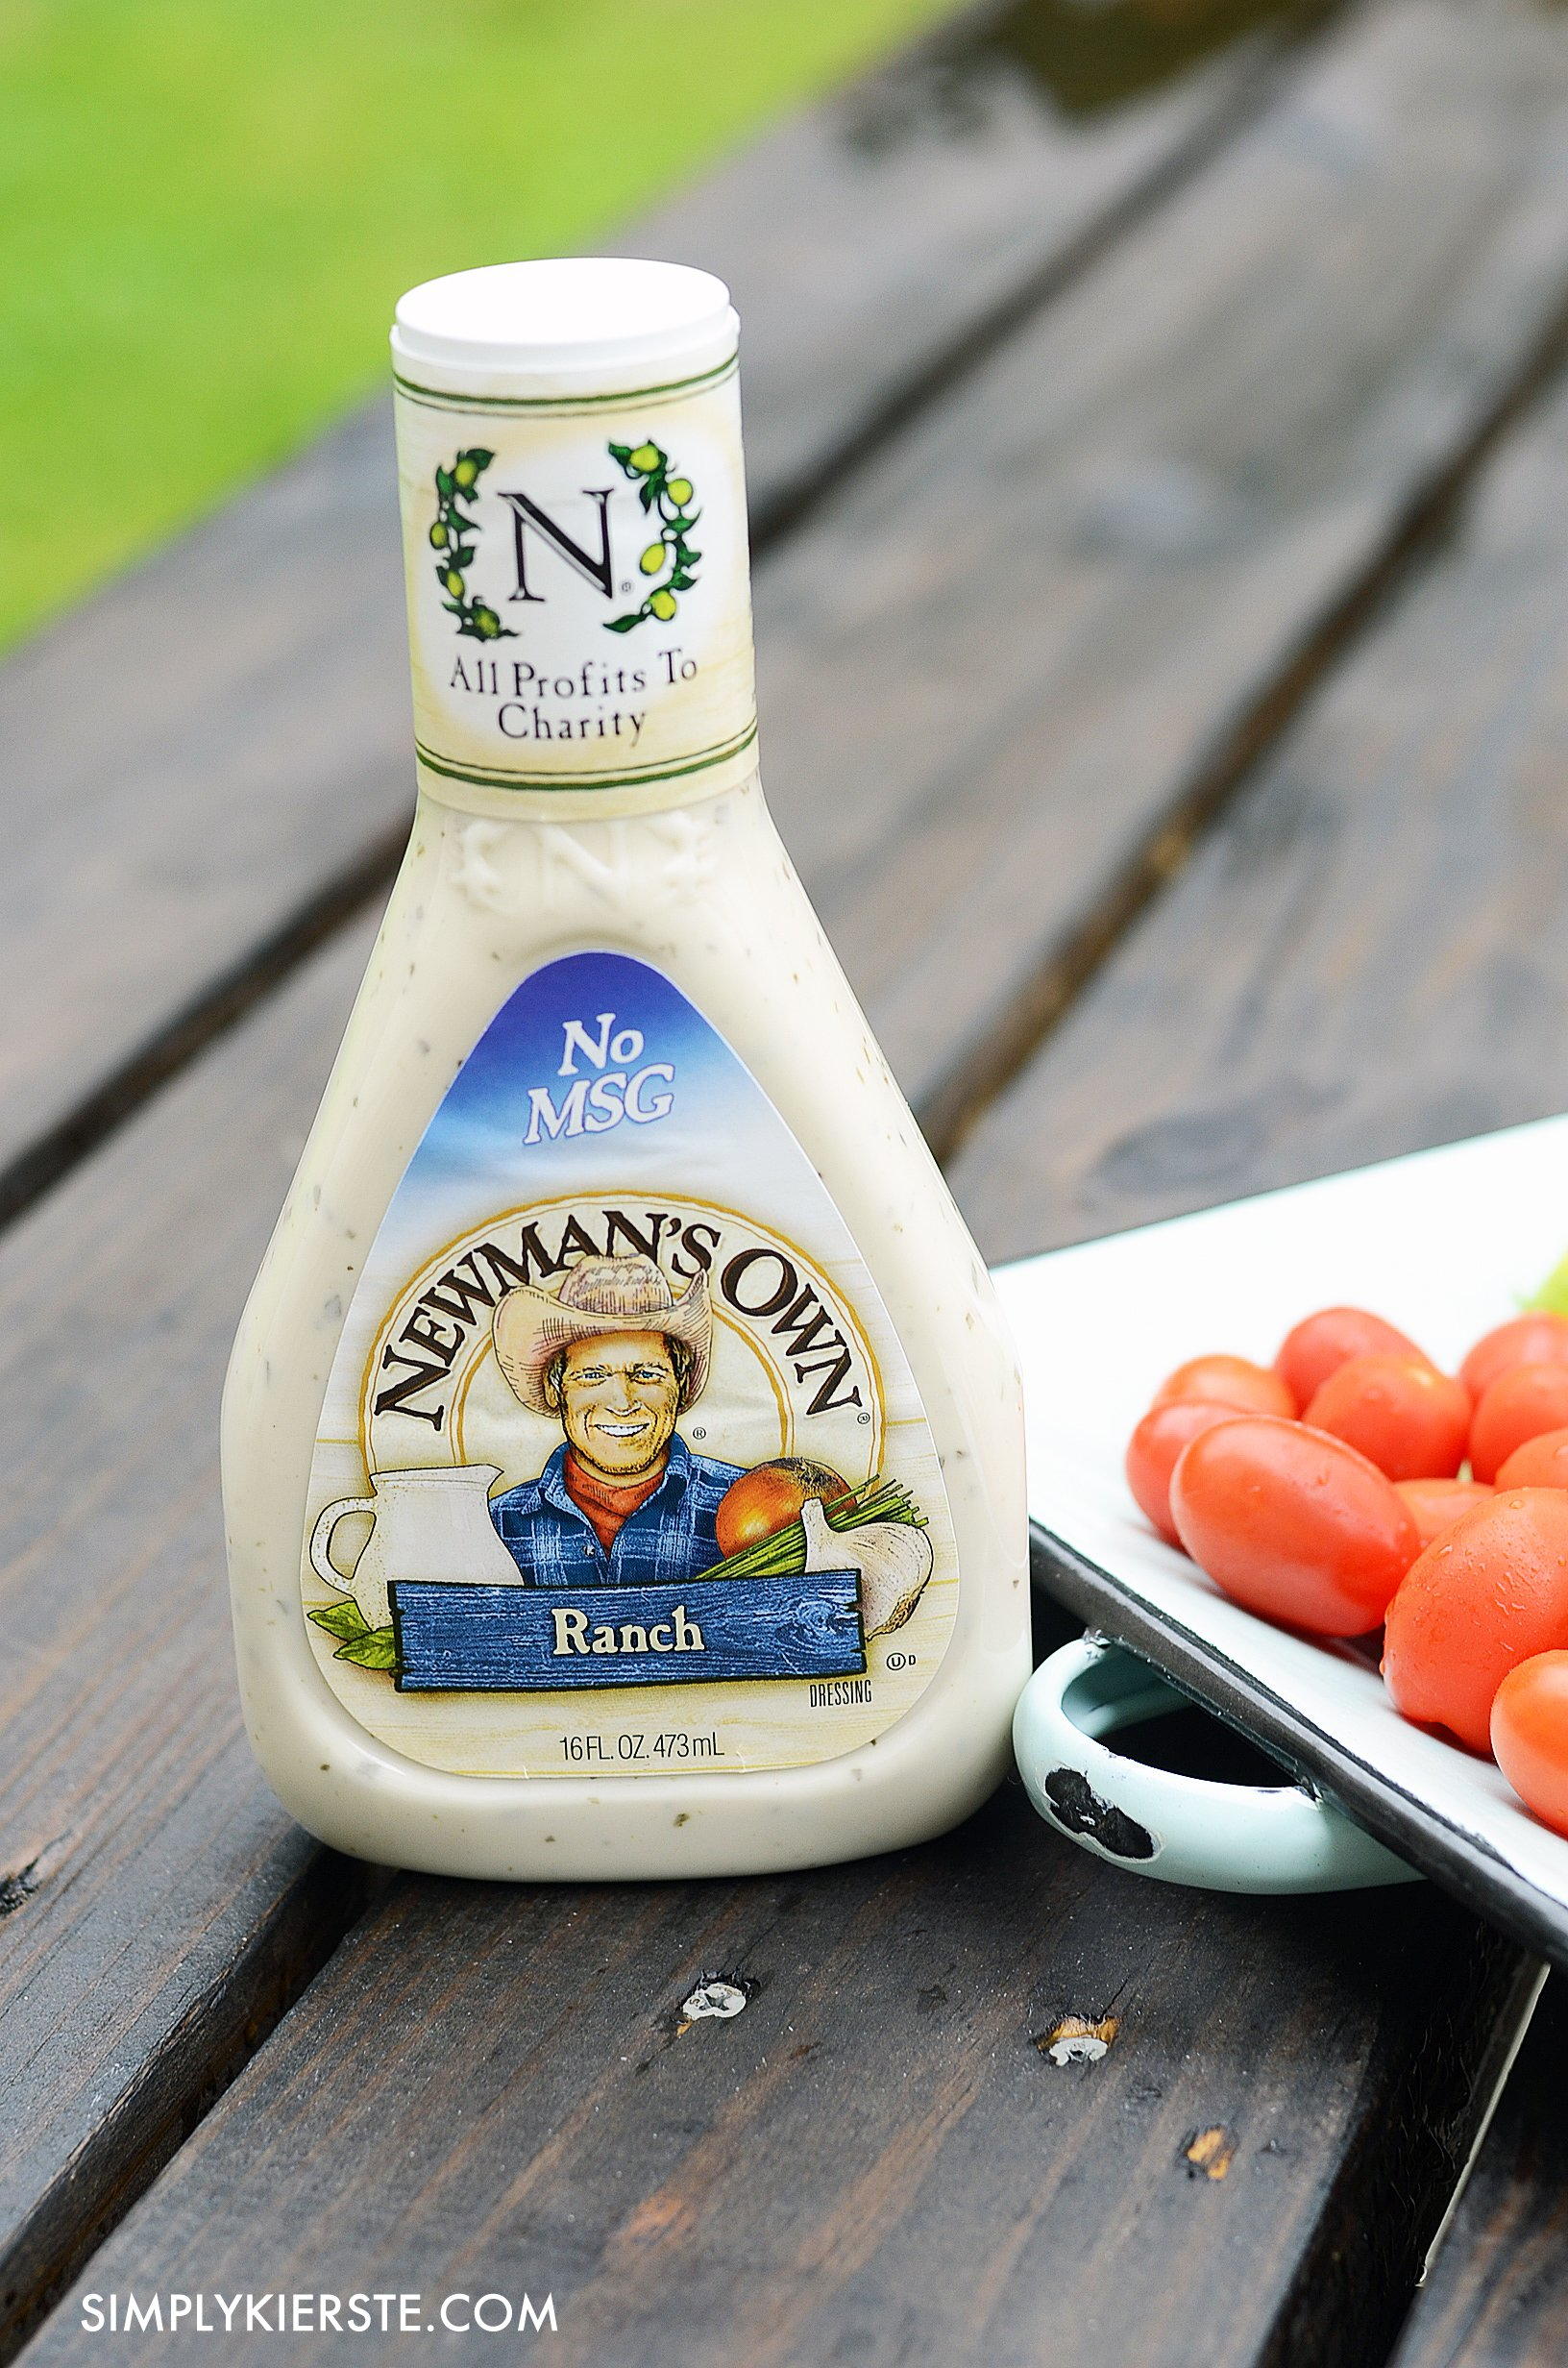 Dinner made easy with Newman's Own | simplykierste.com